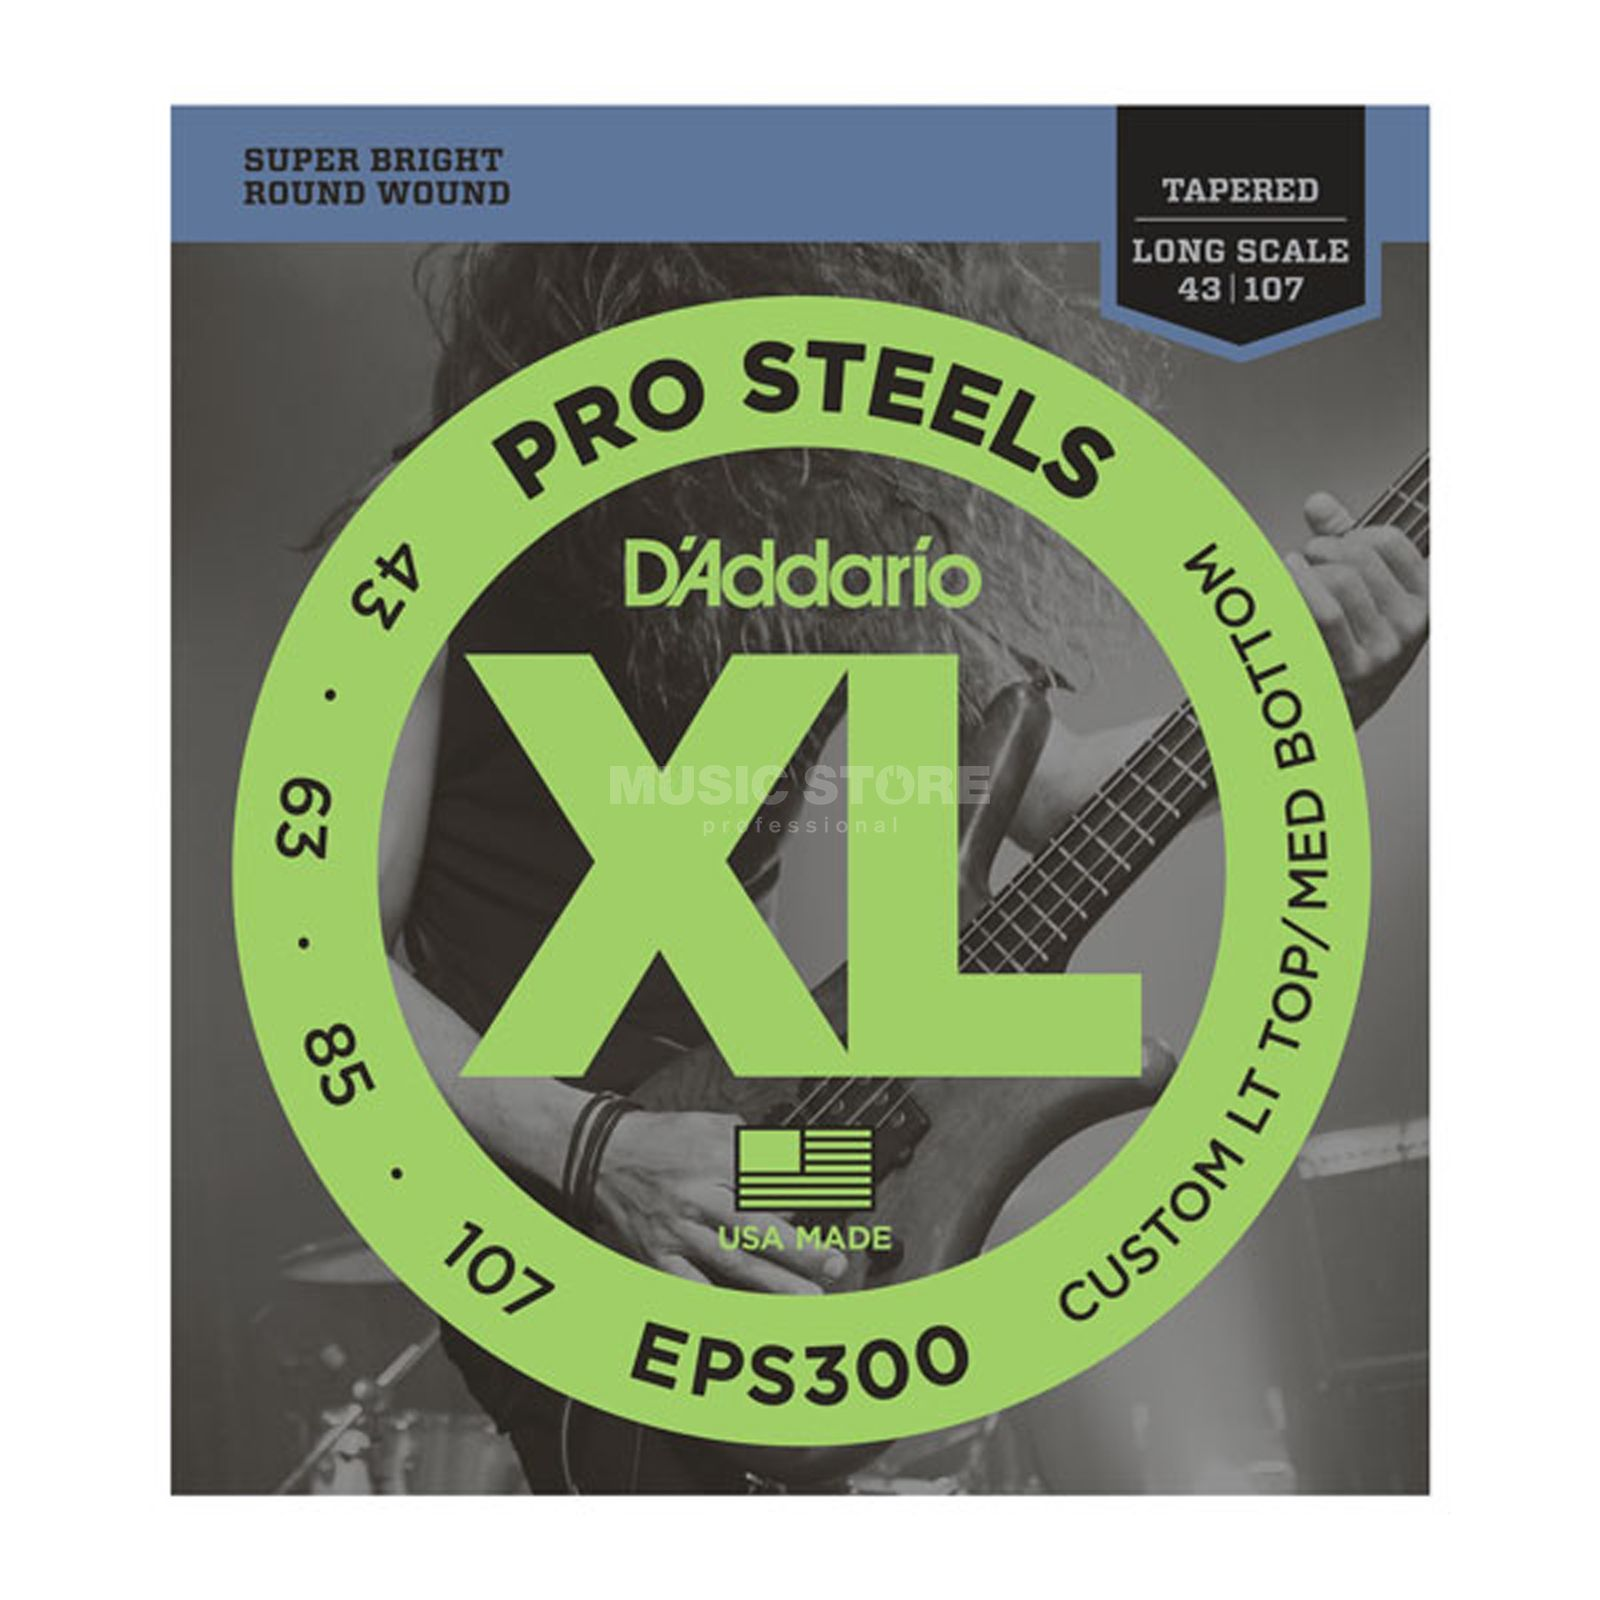 D'Addario Bass Strings Pro Steels 43-107 43-60-85-107, EPS300 Zdjęcie produktu